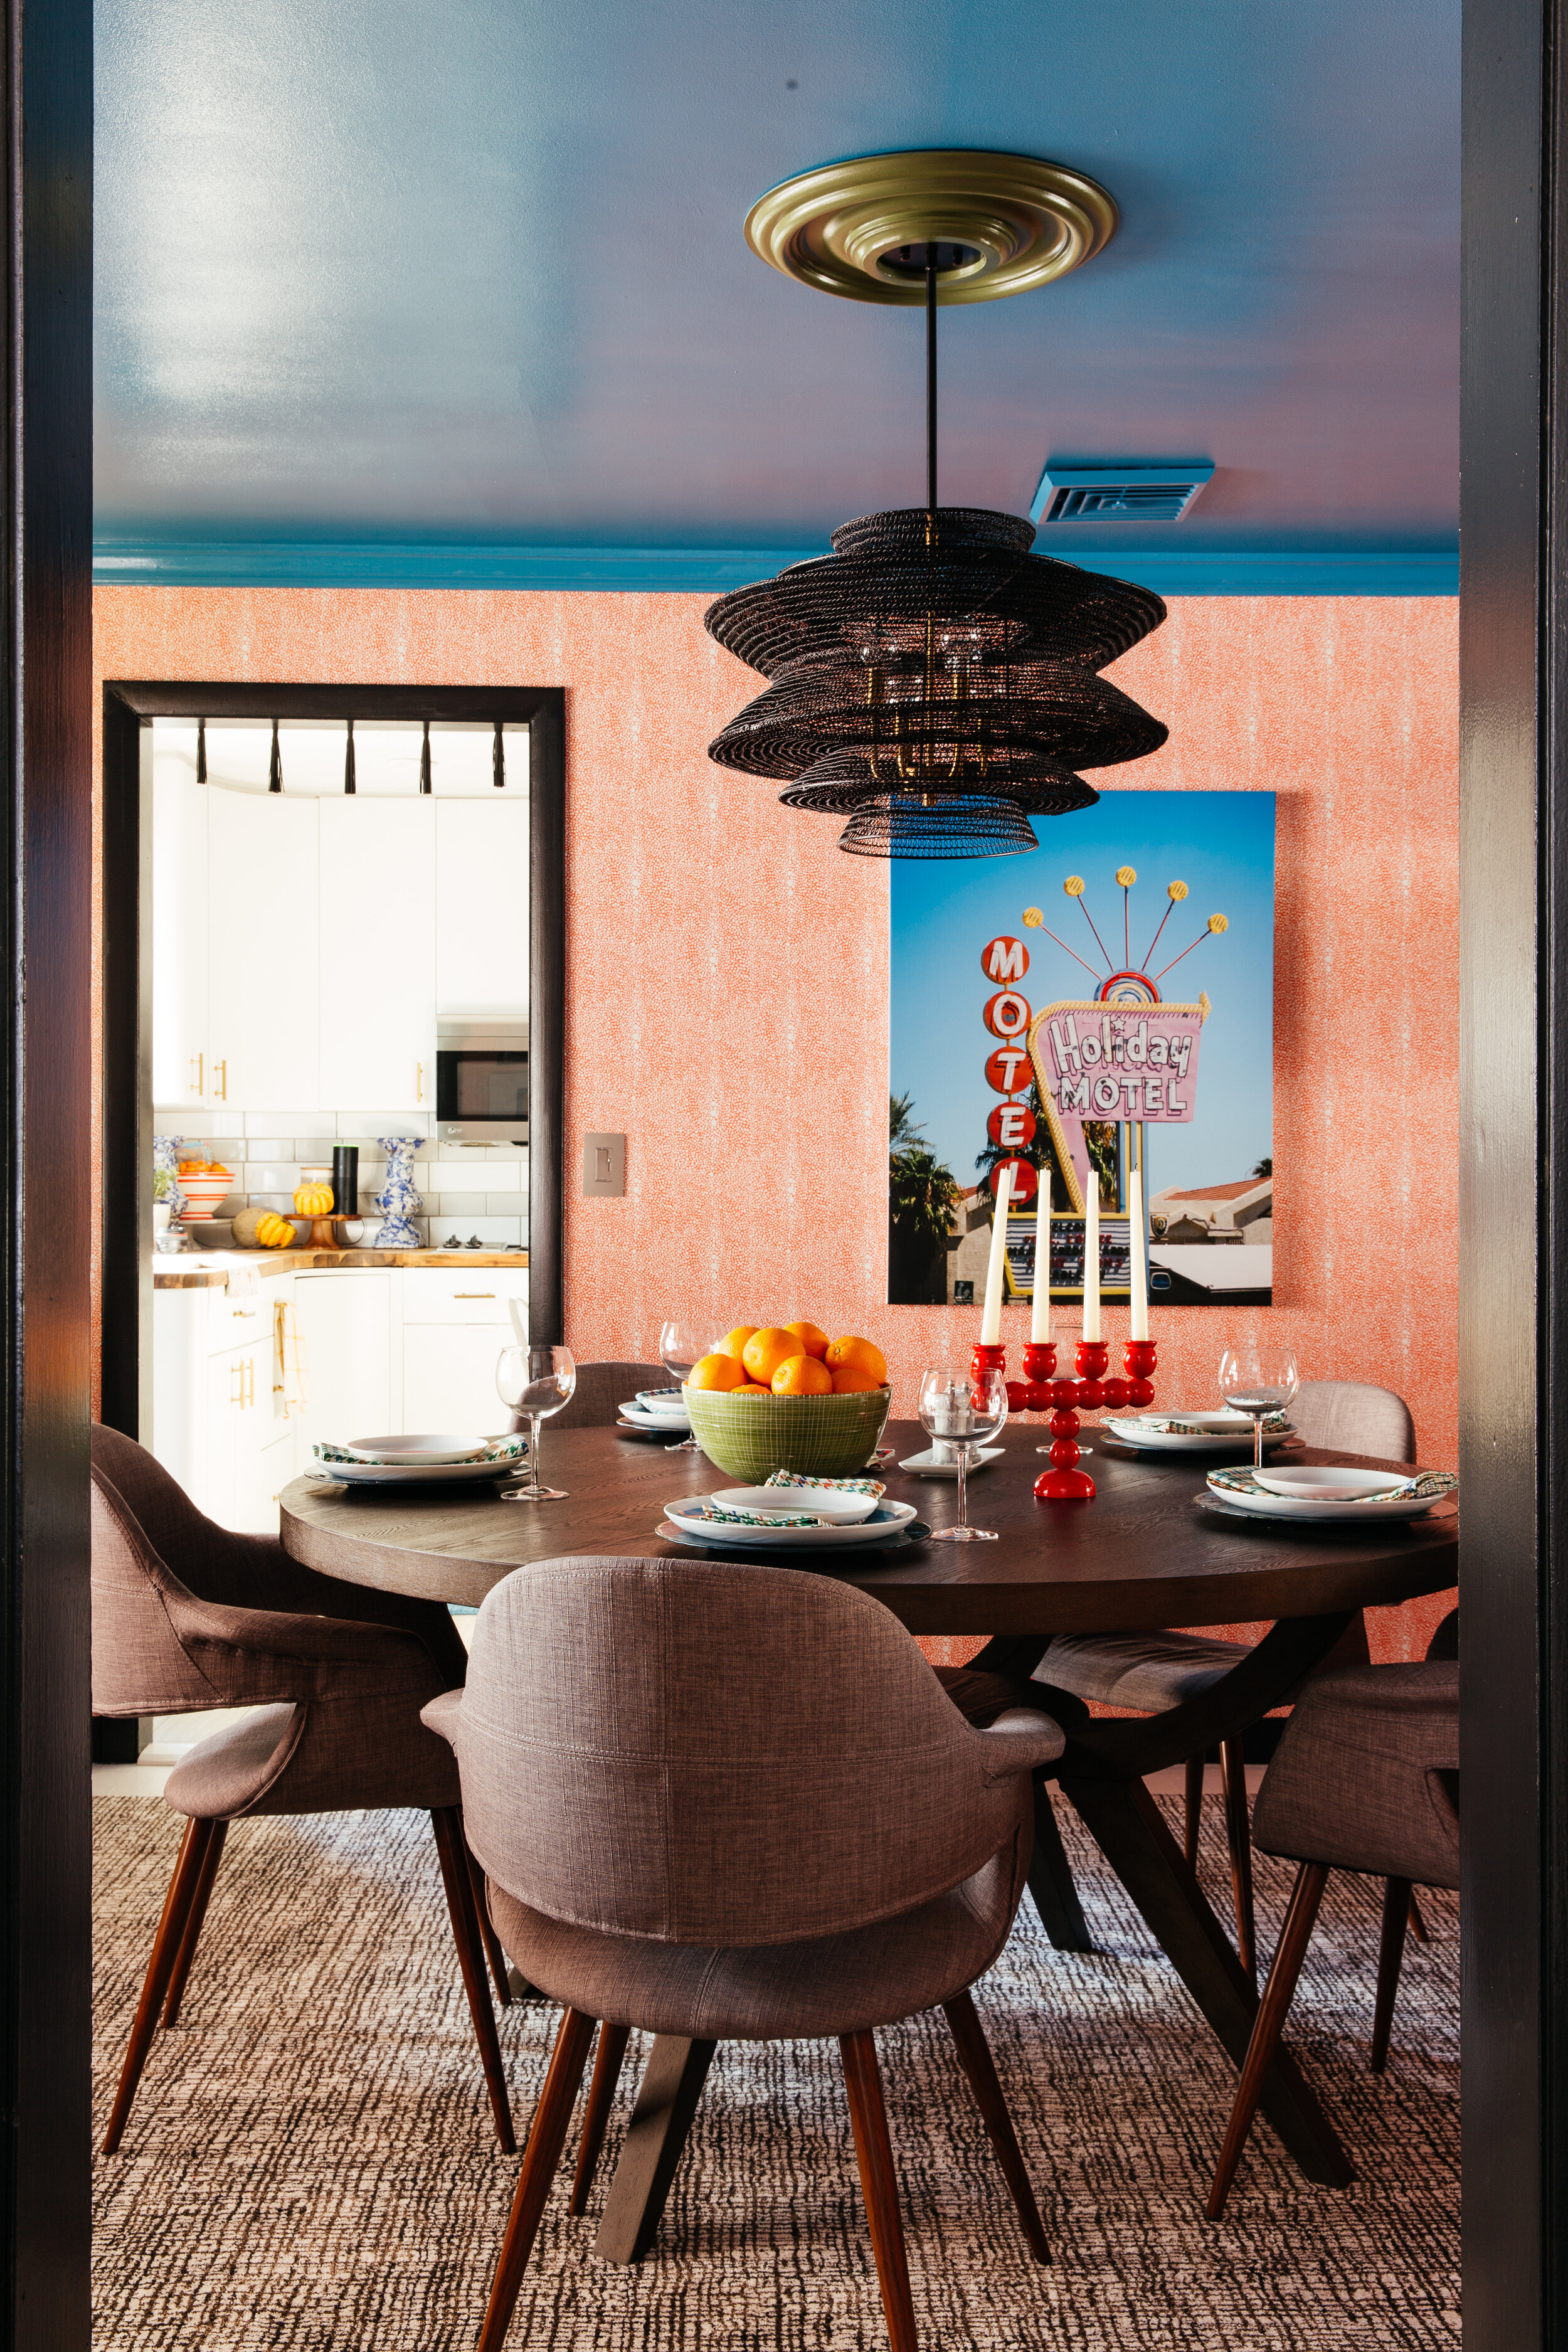 ORC dining room into kitchen from living room with sarinen style chairs lamps plus and motel art by minted design by TheRathProject.jpg